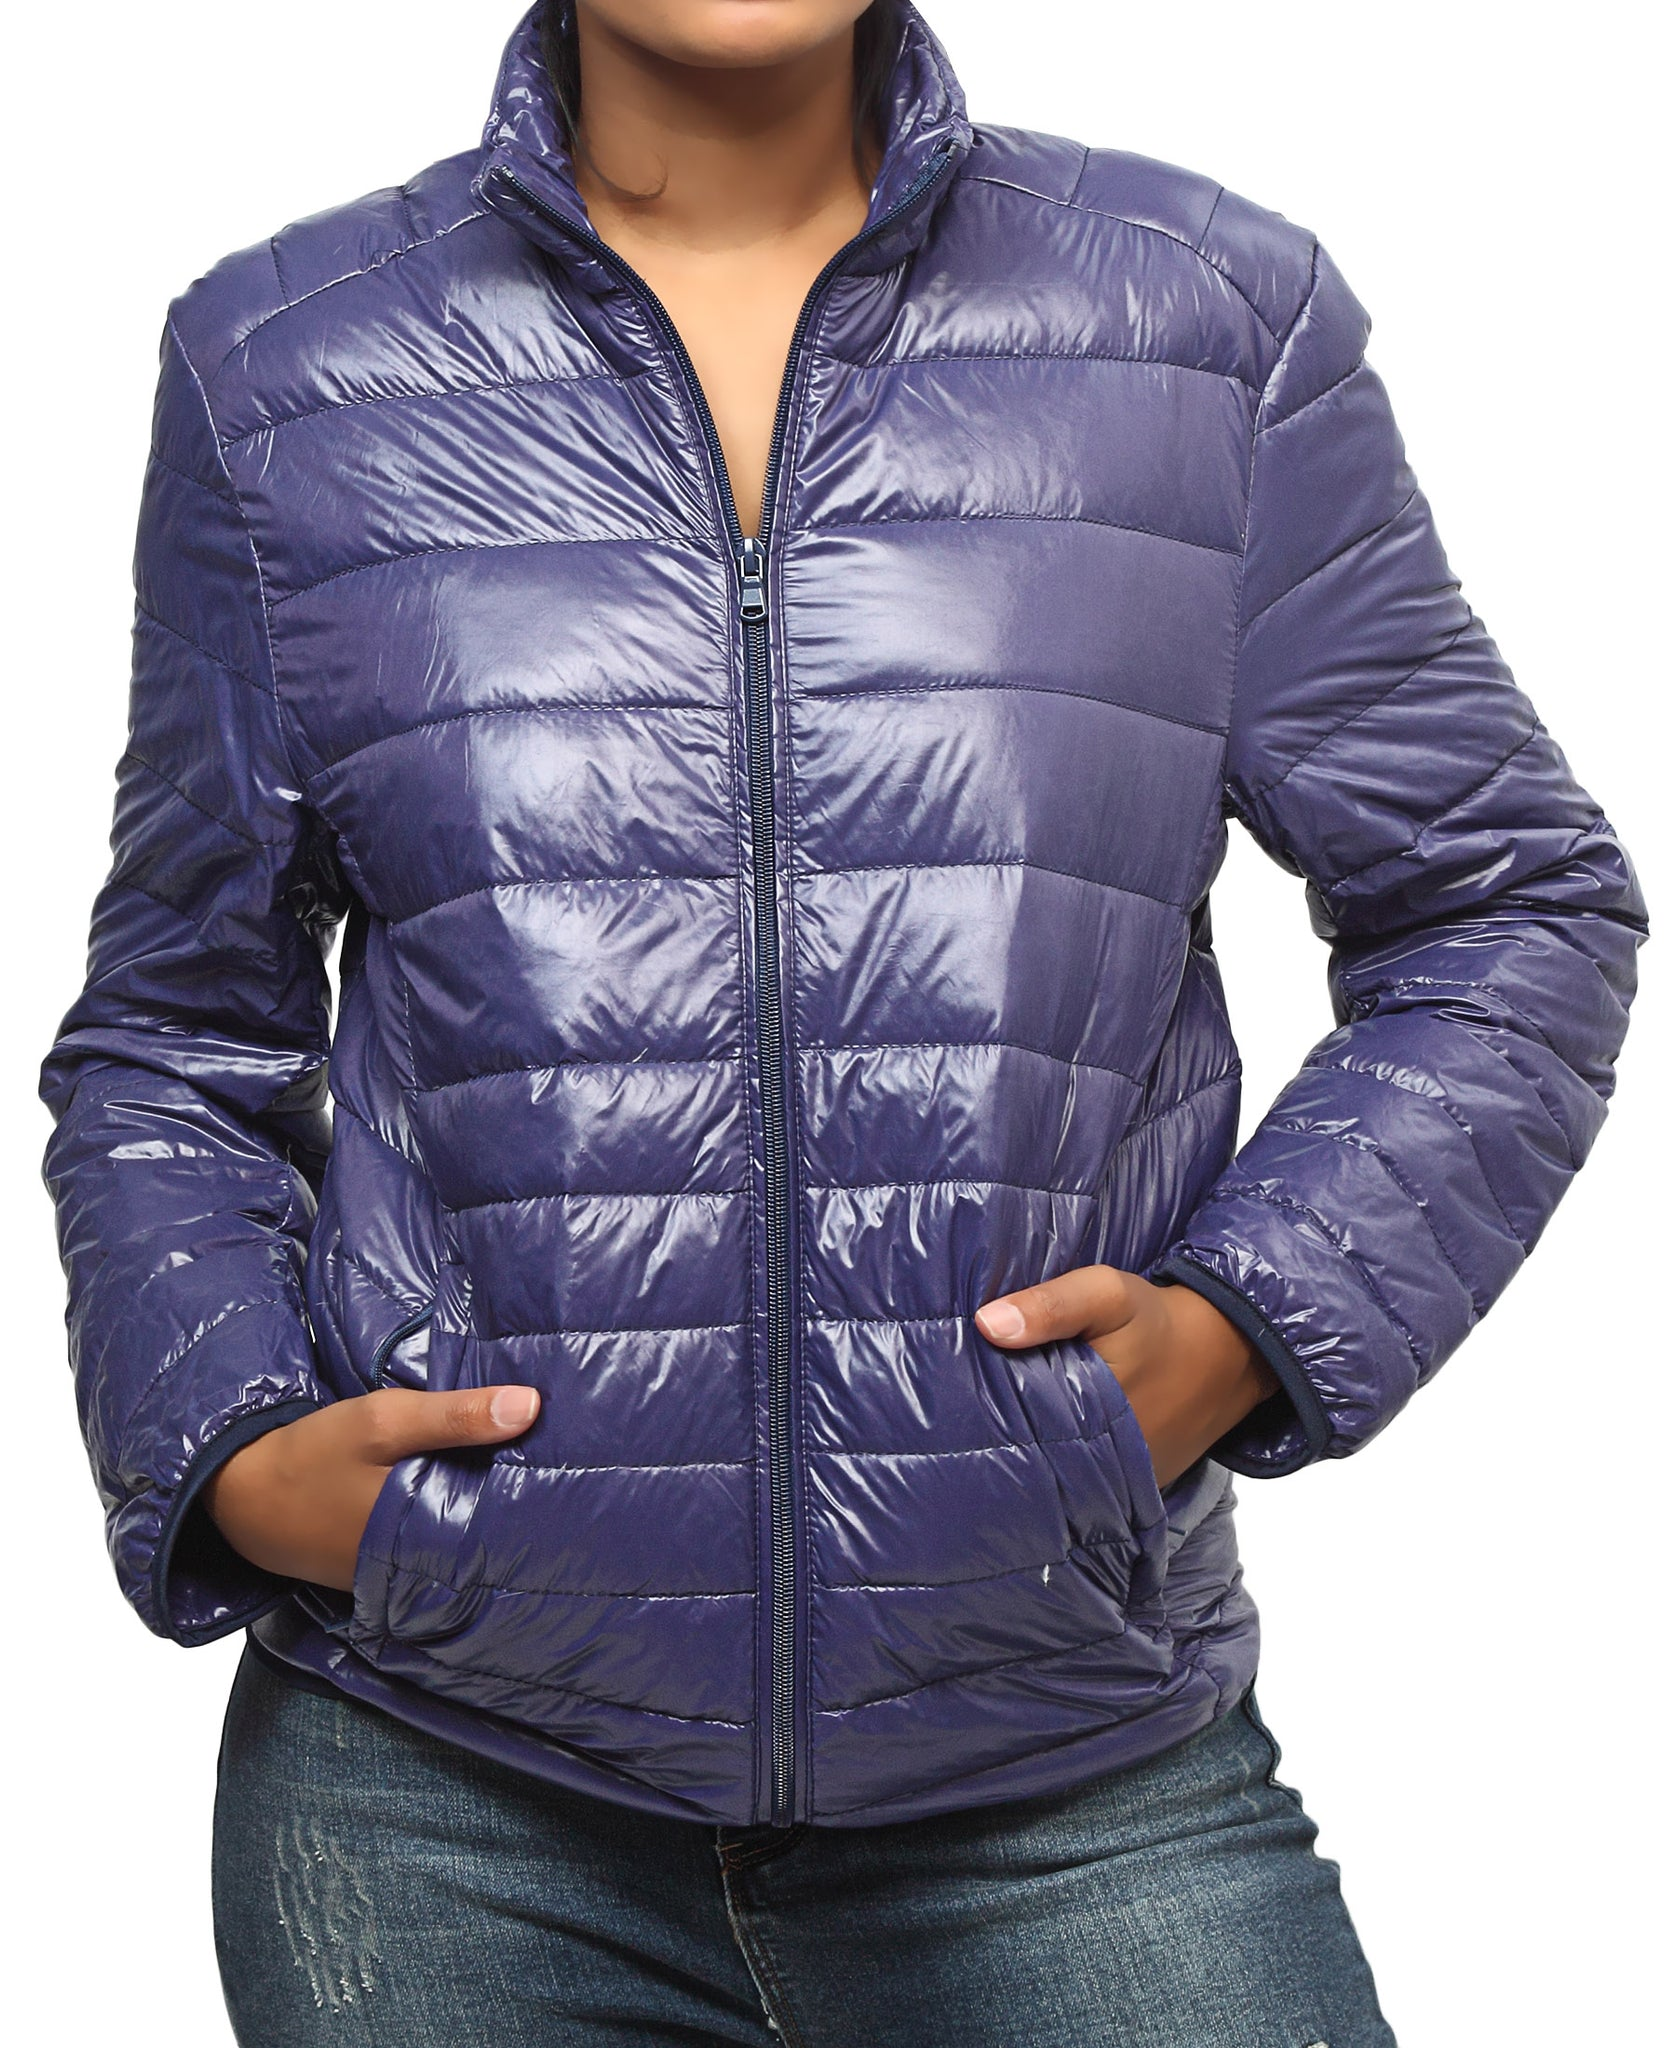 Compactable Unisex Travel Jacket - Purple